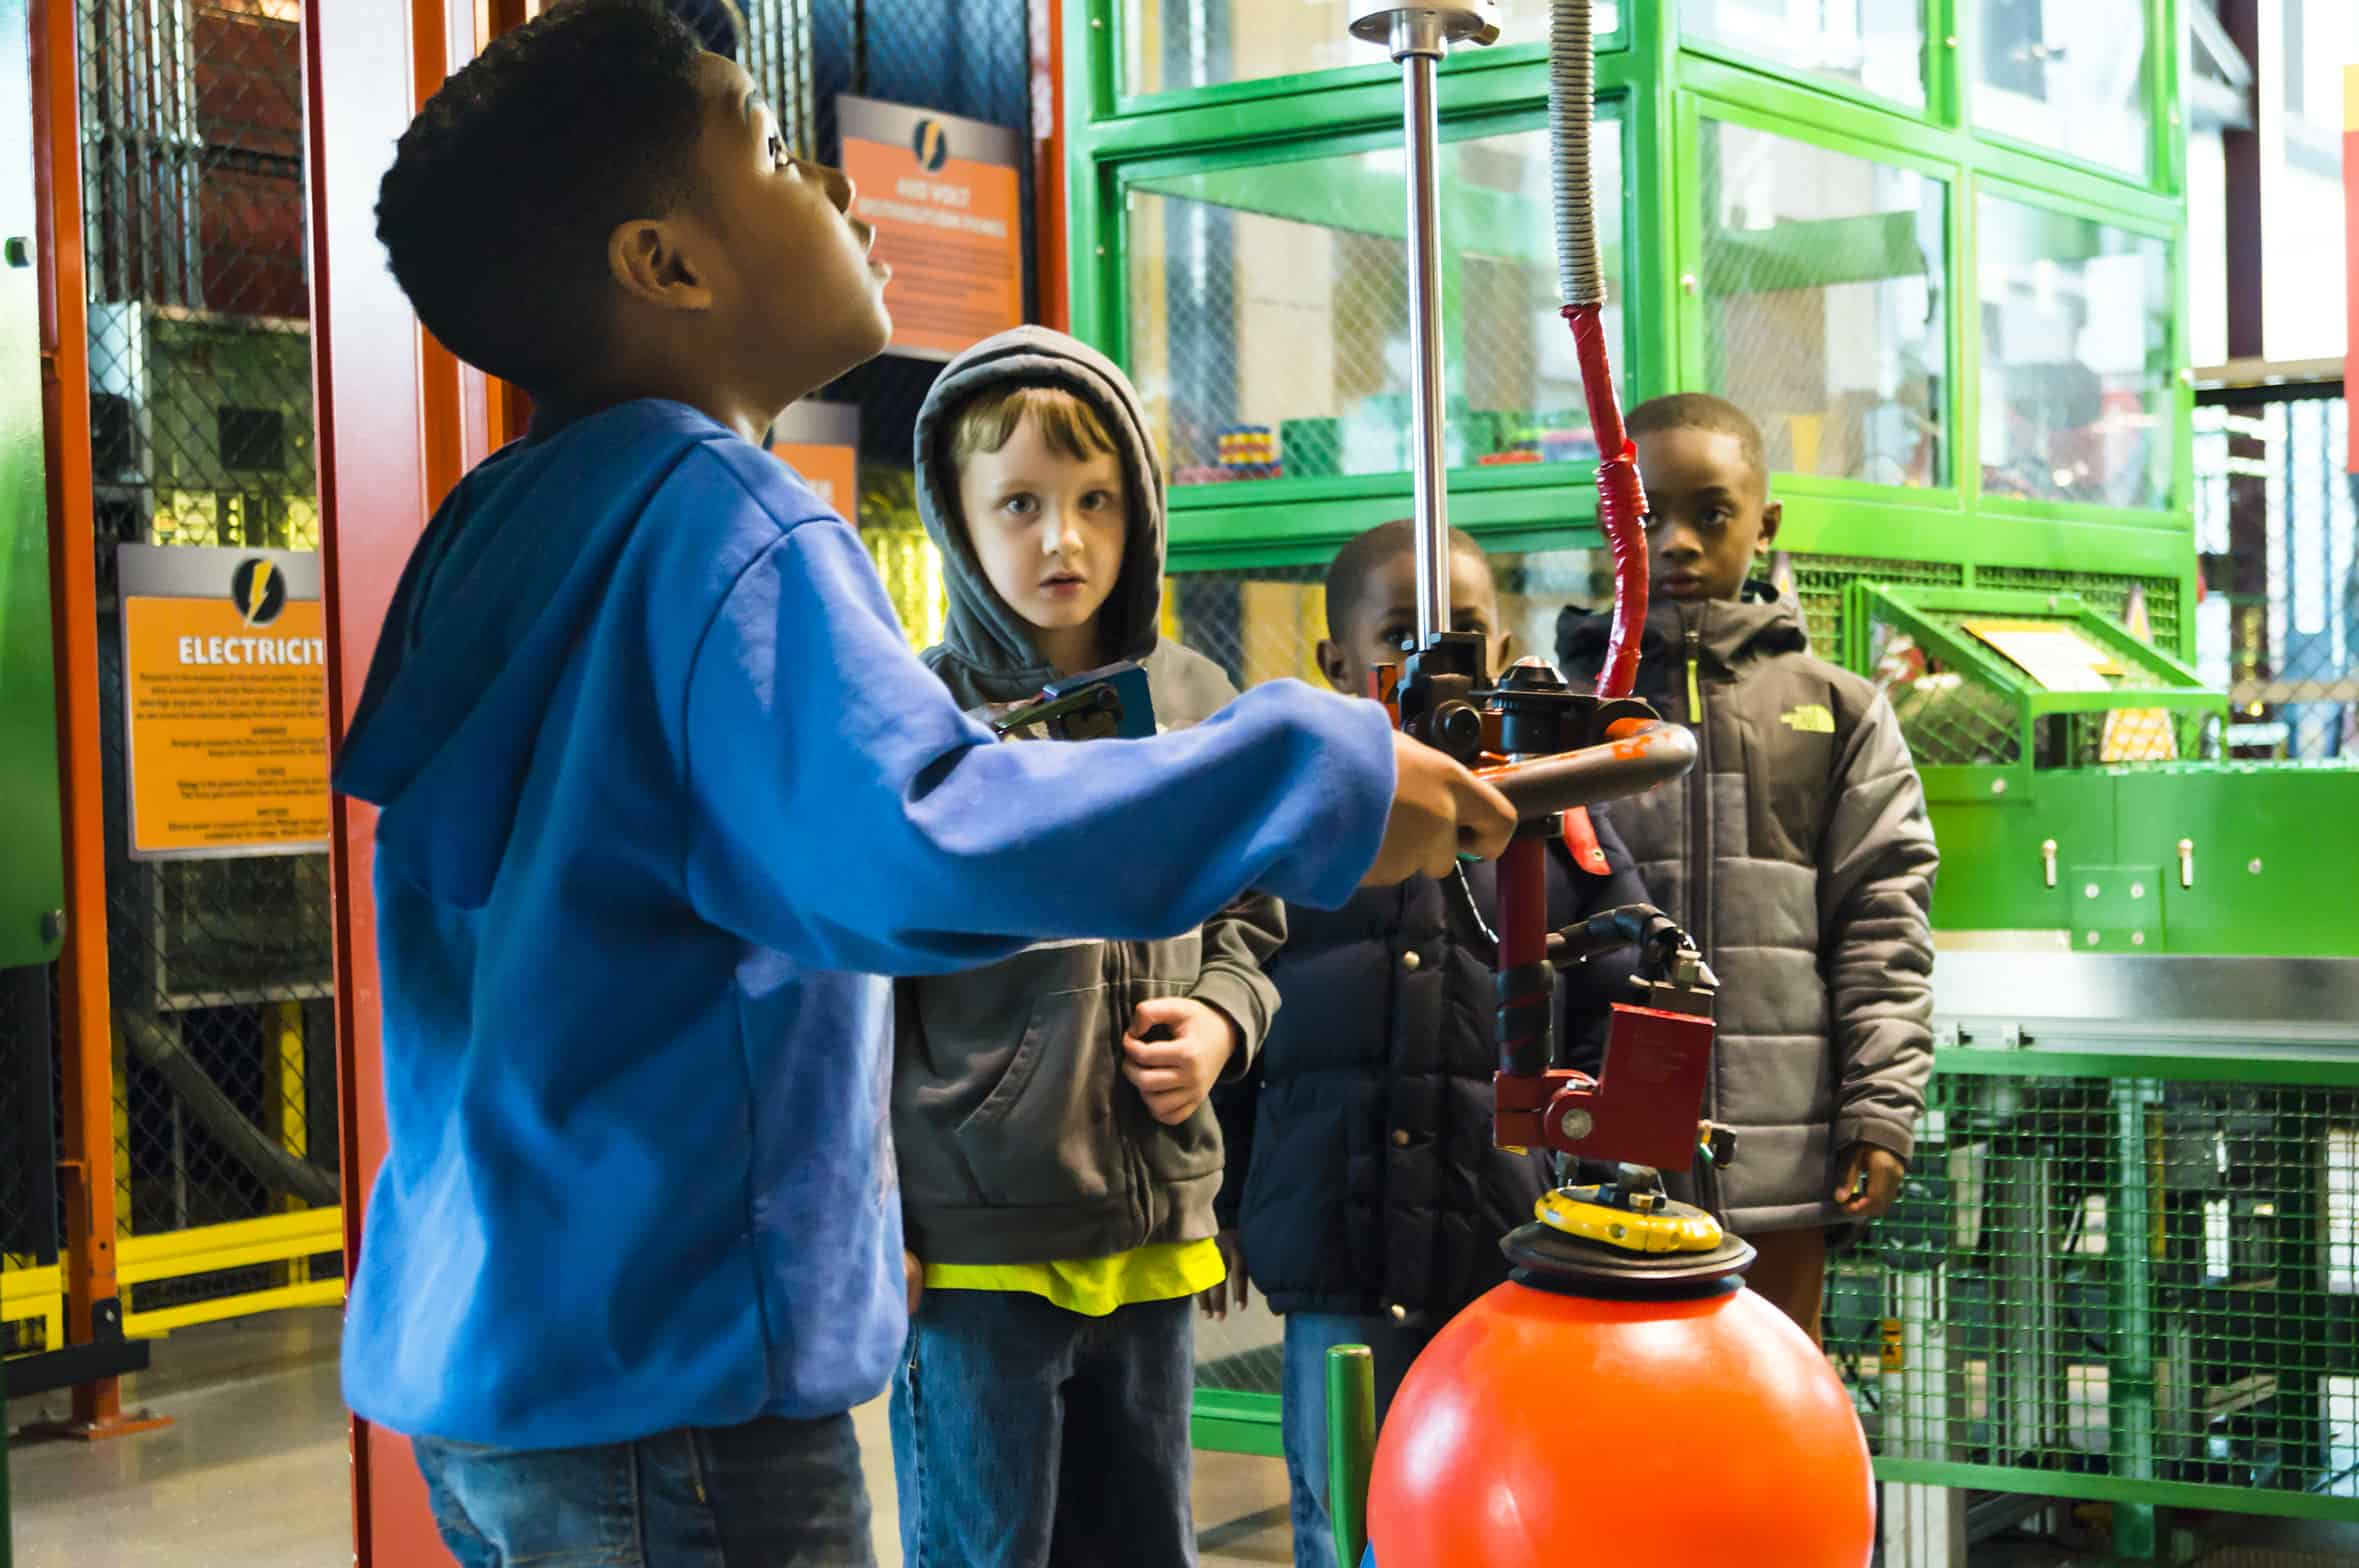 Three children use a suction lift exhibit in the Fun Factory space